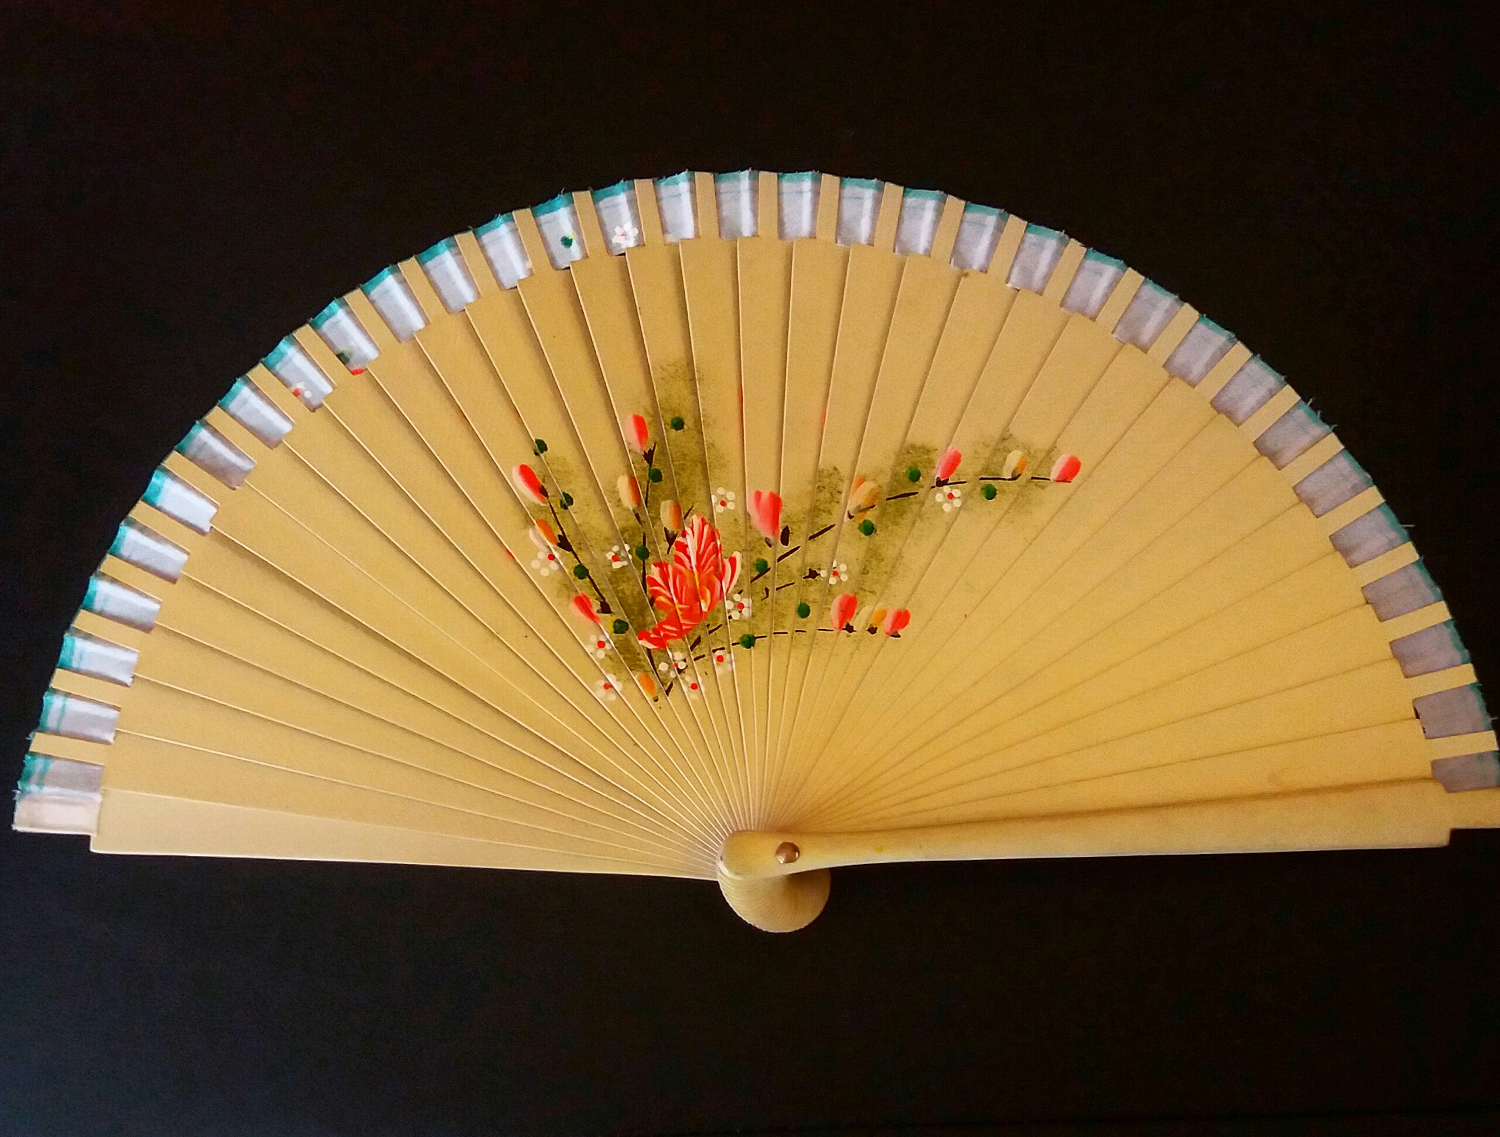 bEAUTIFUL travel #souvenir from #Spain #FAN #TRAVEL #Europe